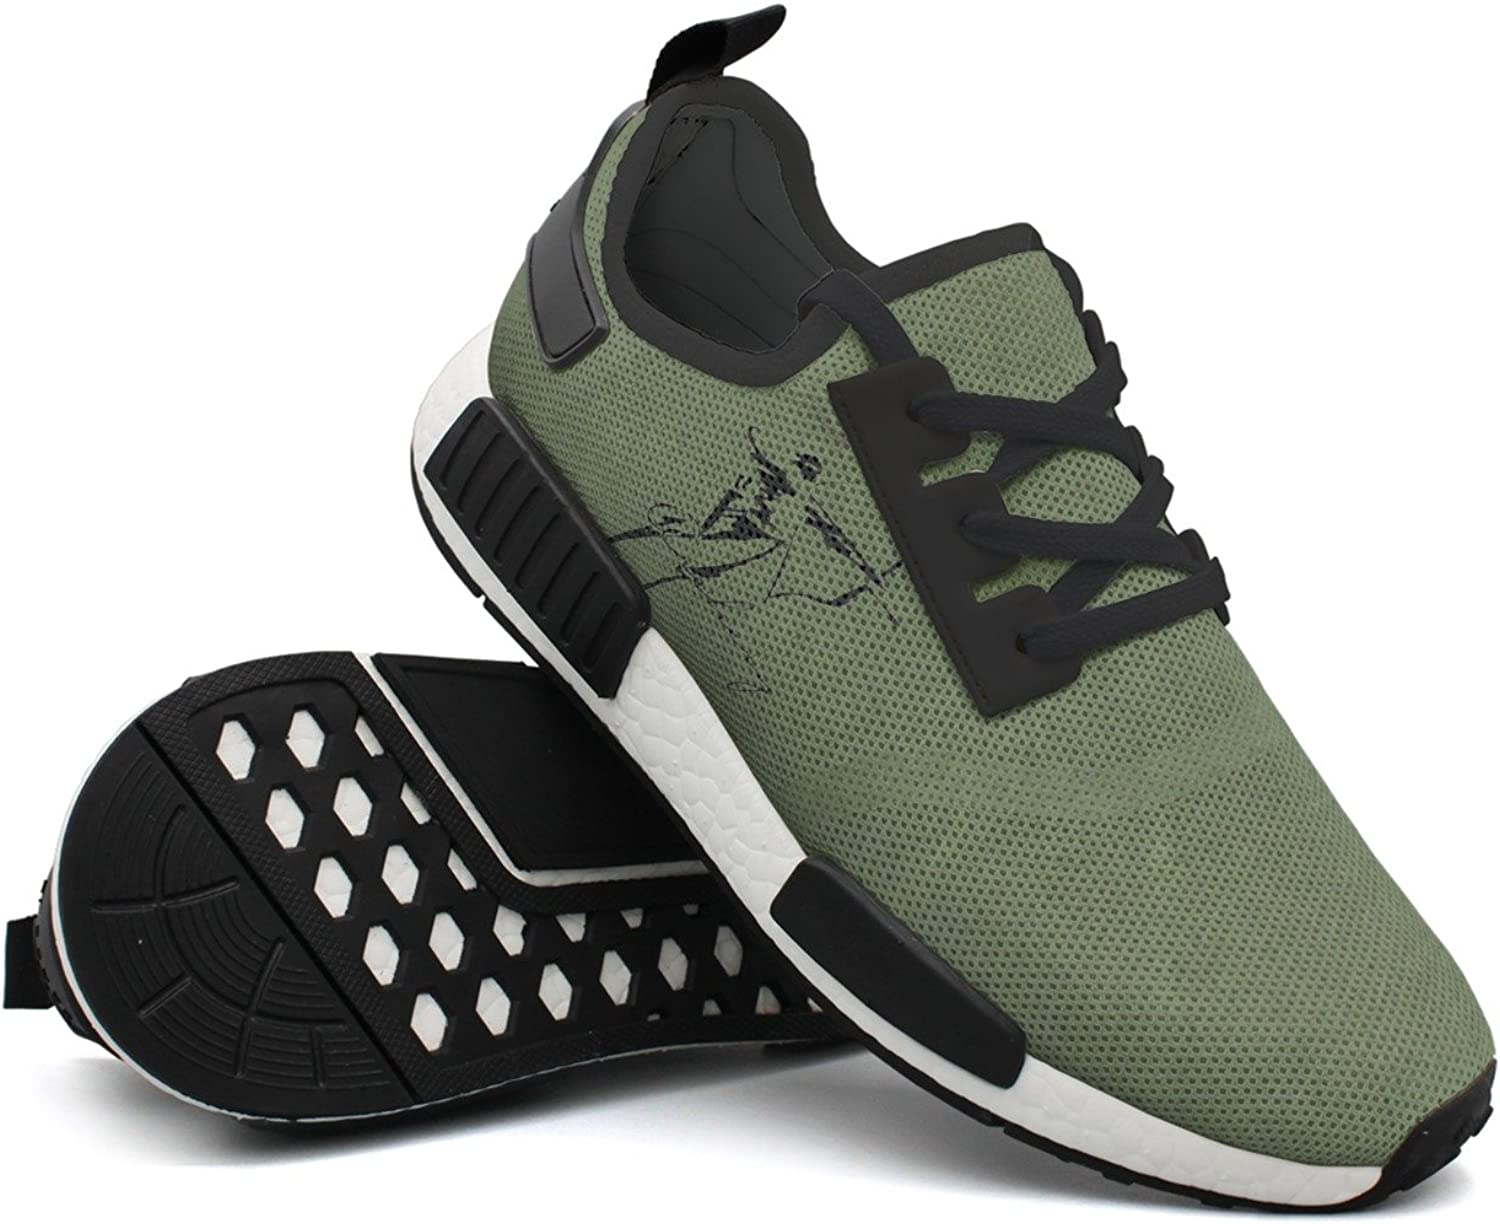 Archery Design Man's Gift Navy Running shoes New Young Men